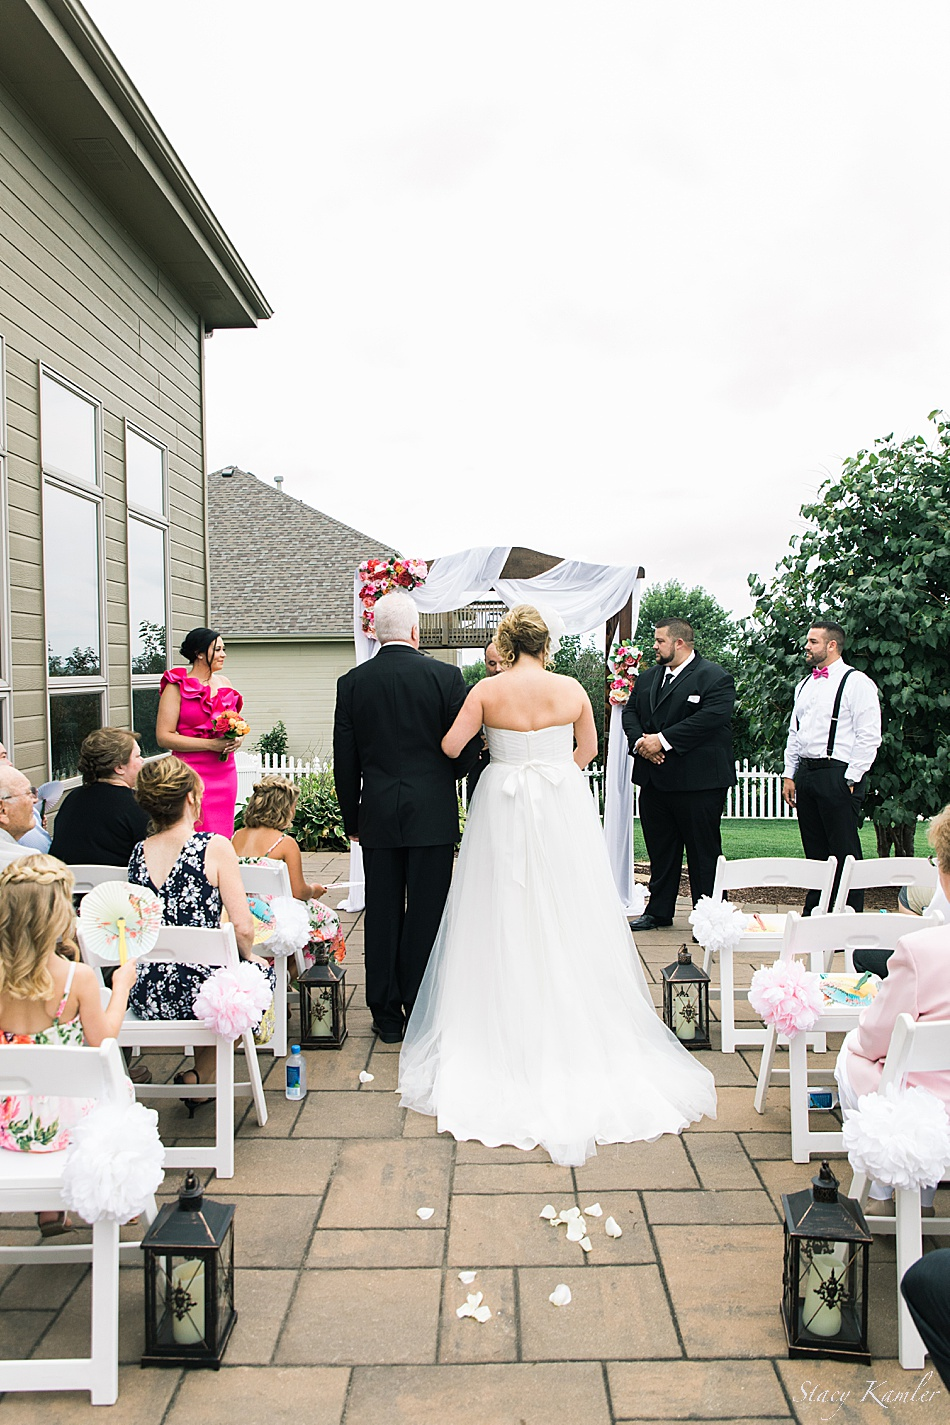 Walking down the isle in a backyard ceremony